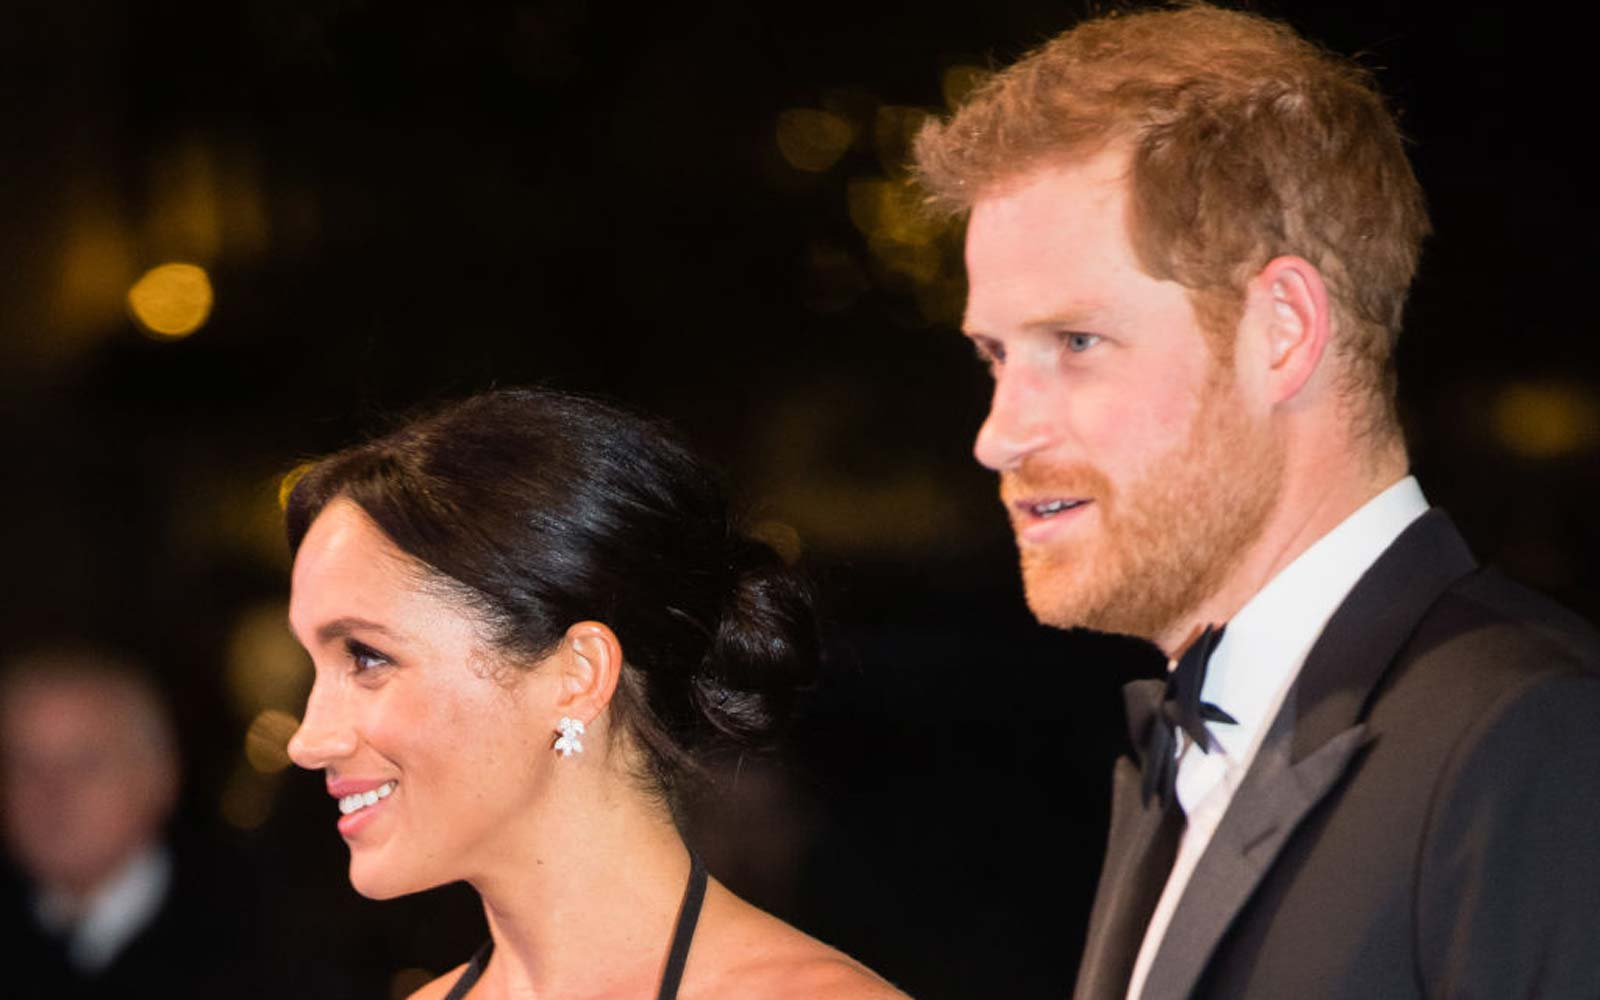 Prince Harry Jokes That He 'Can't Hide' Meghan Markle at Public Events